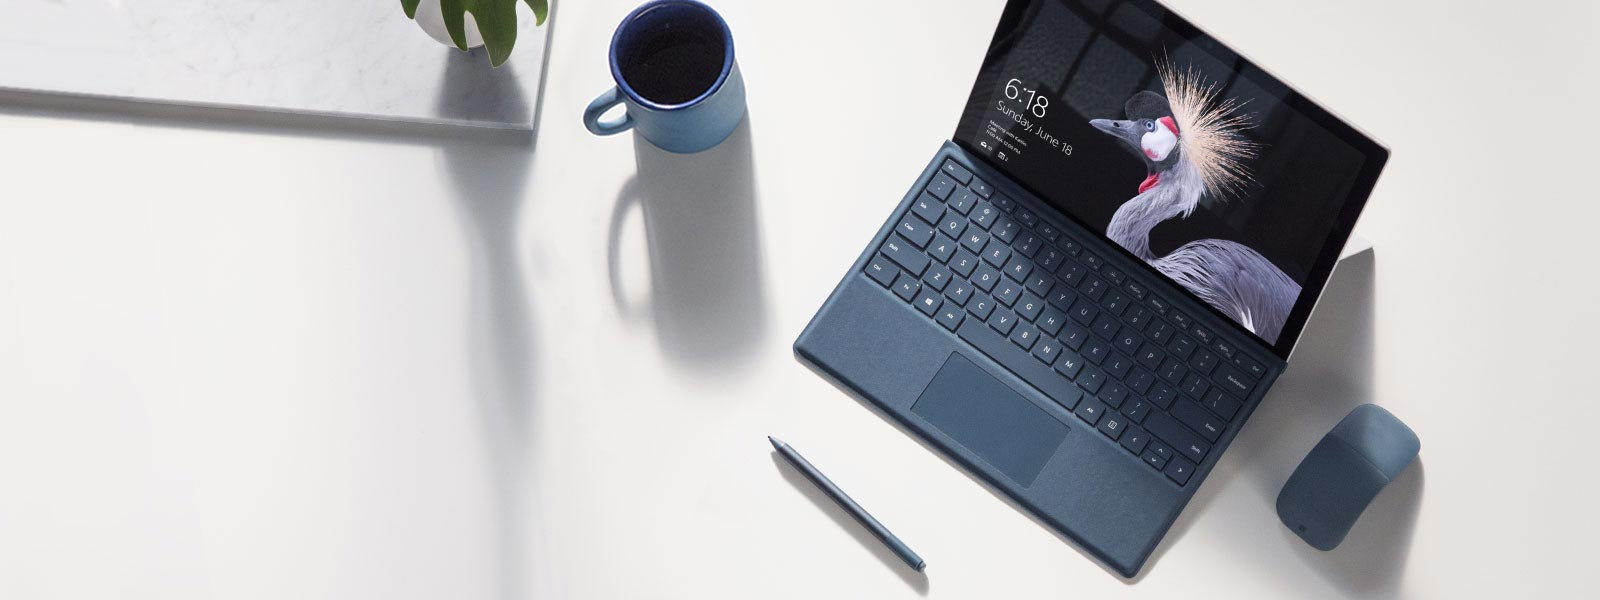 A Surface Pro on a desk with a pen and a mouse